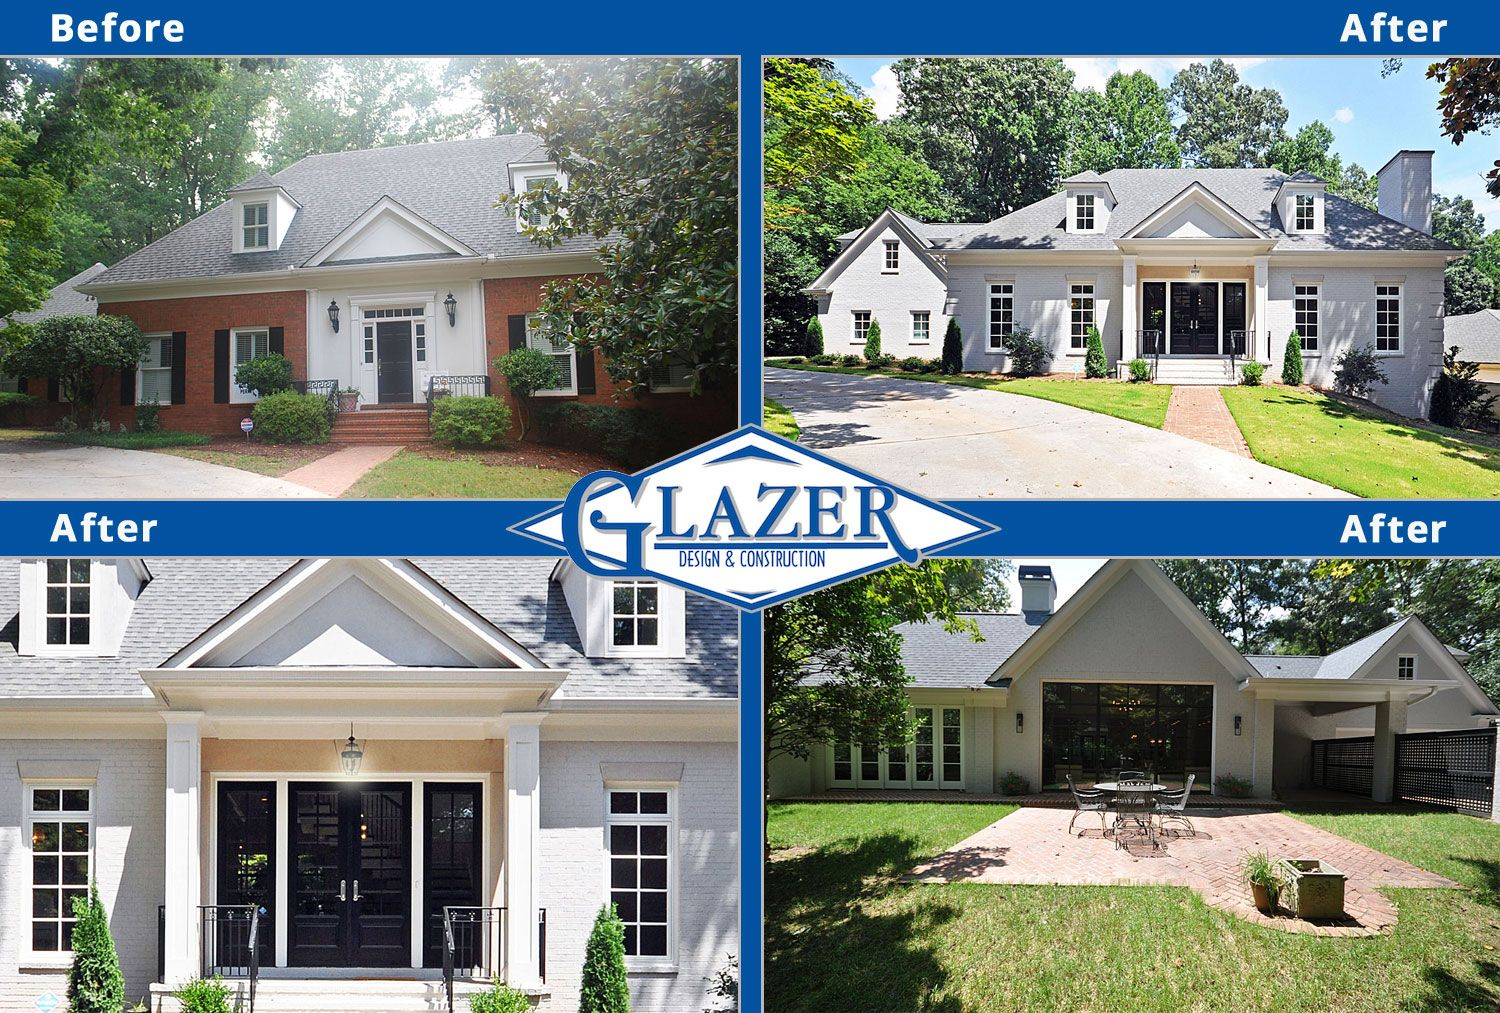 View home renovation before and after photo collages of for Home renovation before and after